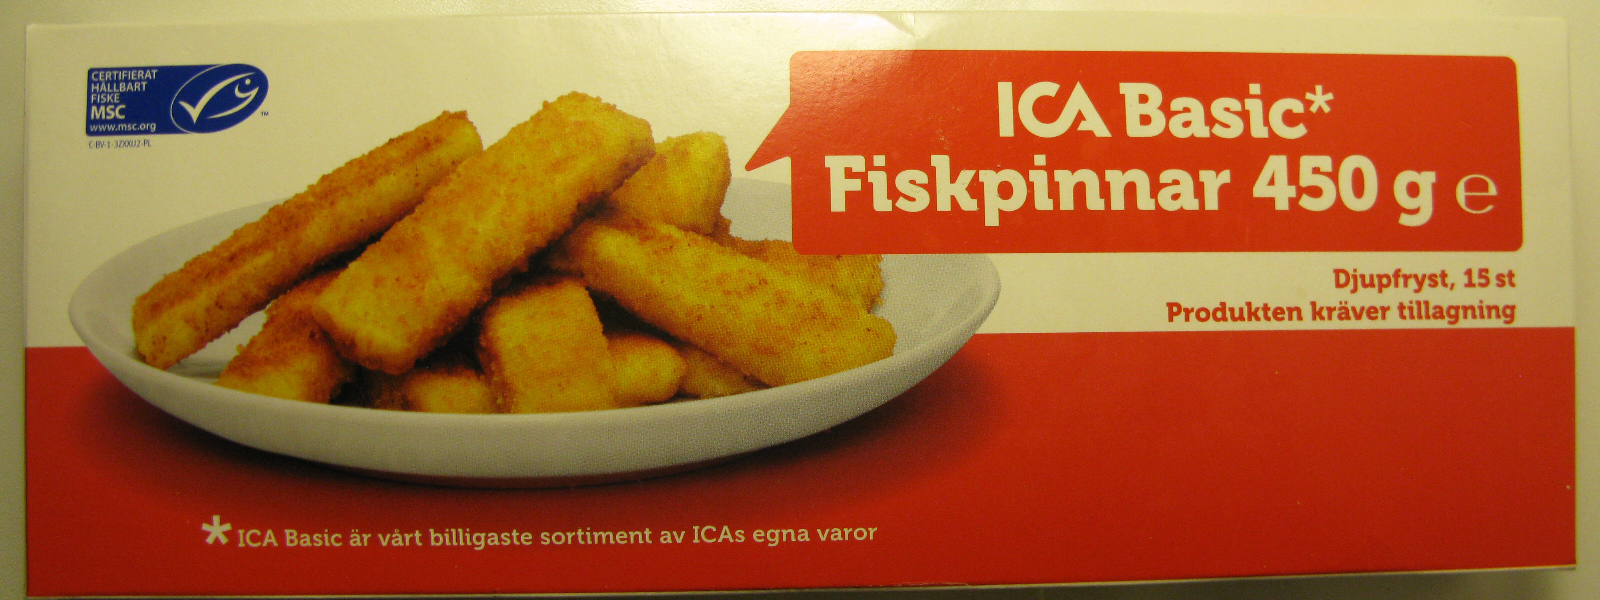 chicken nuggets ica basic priser